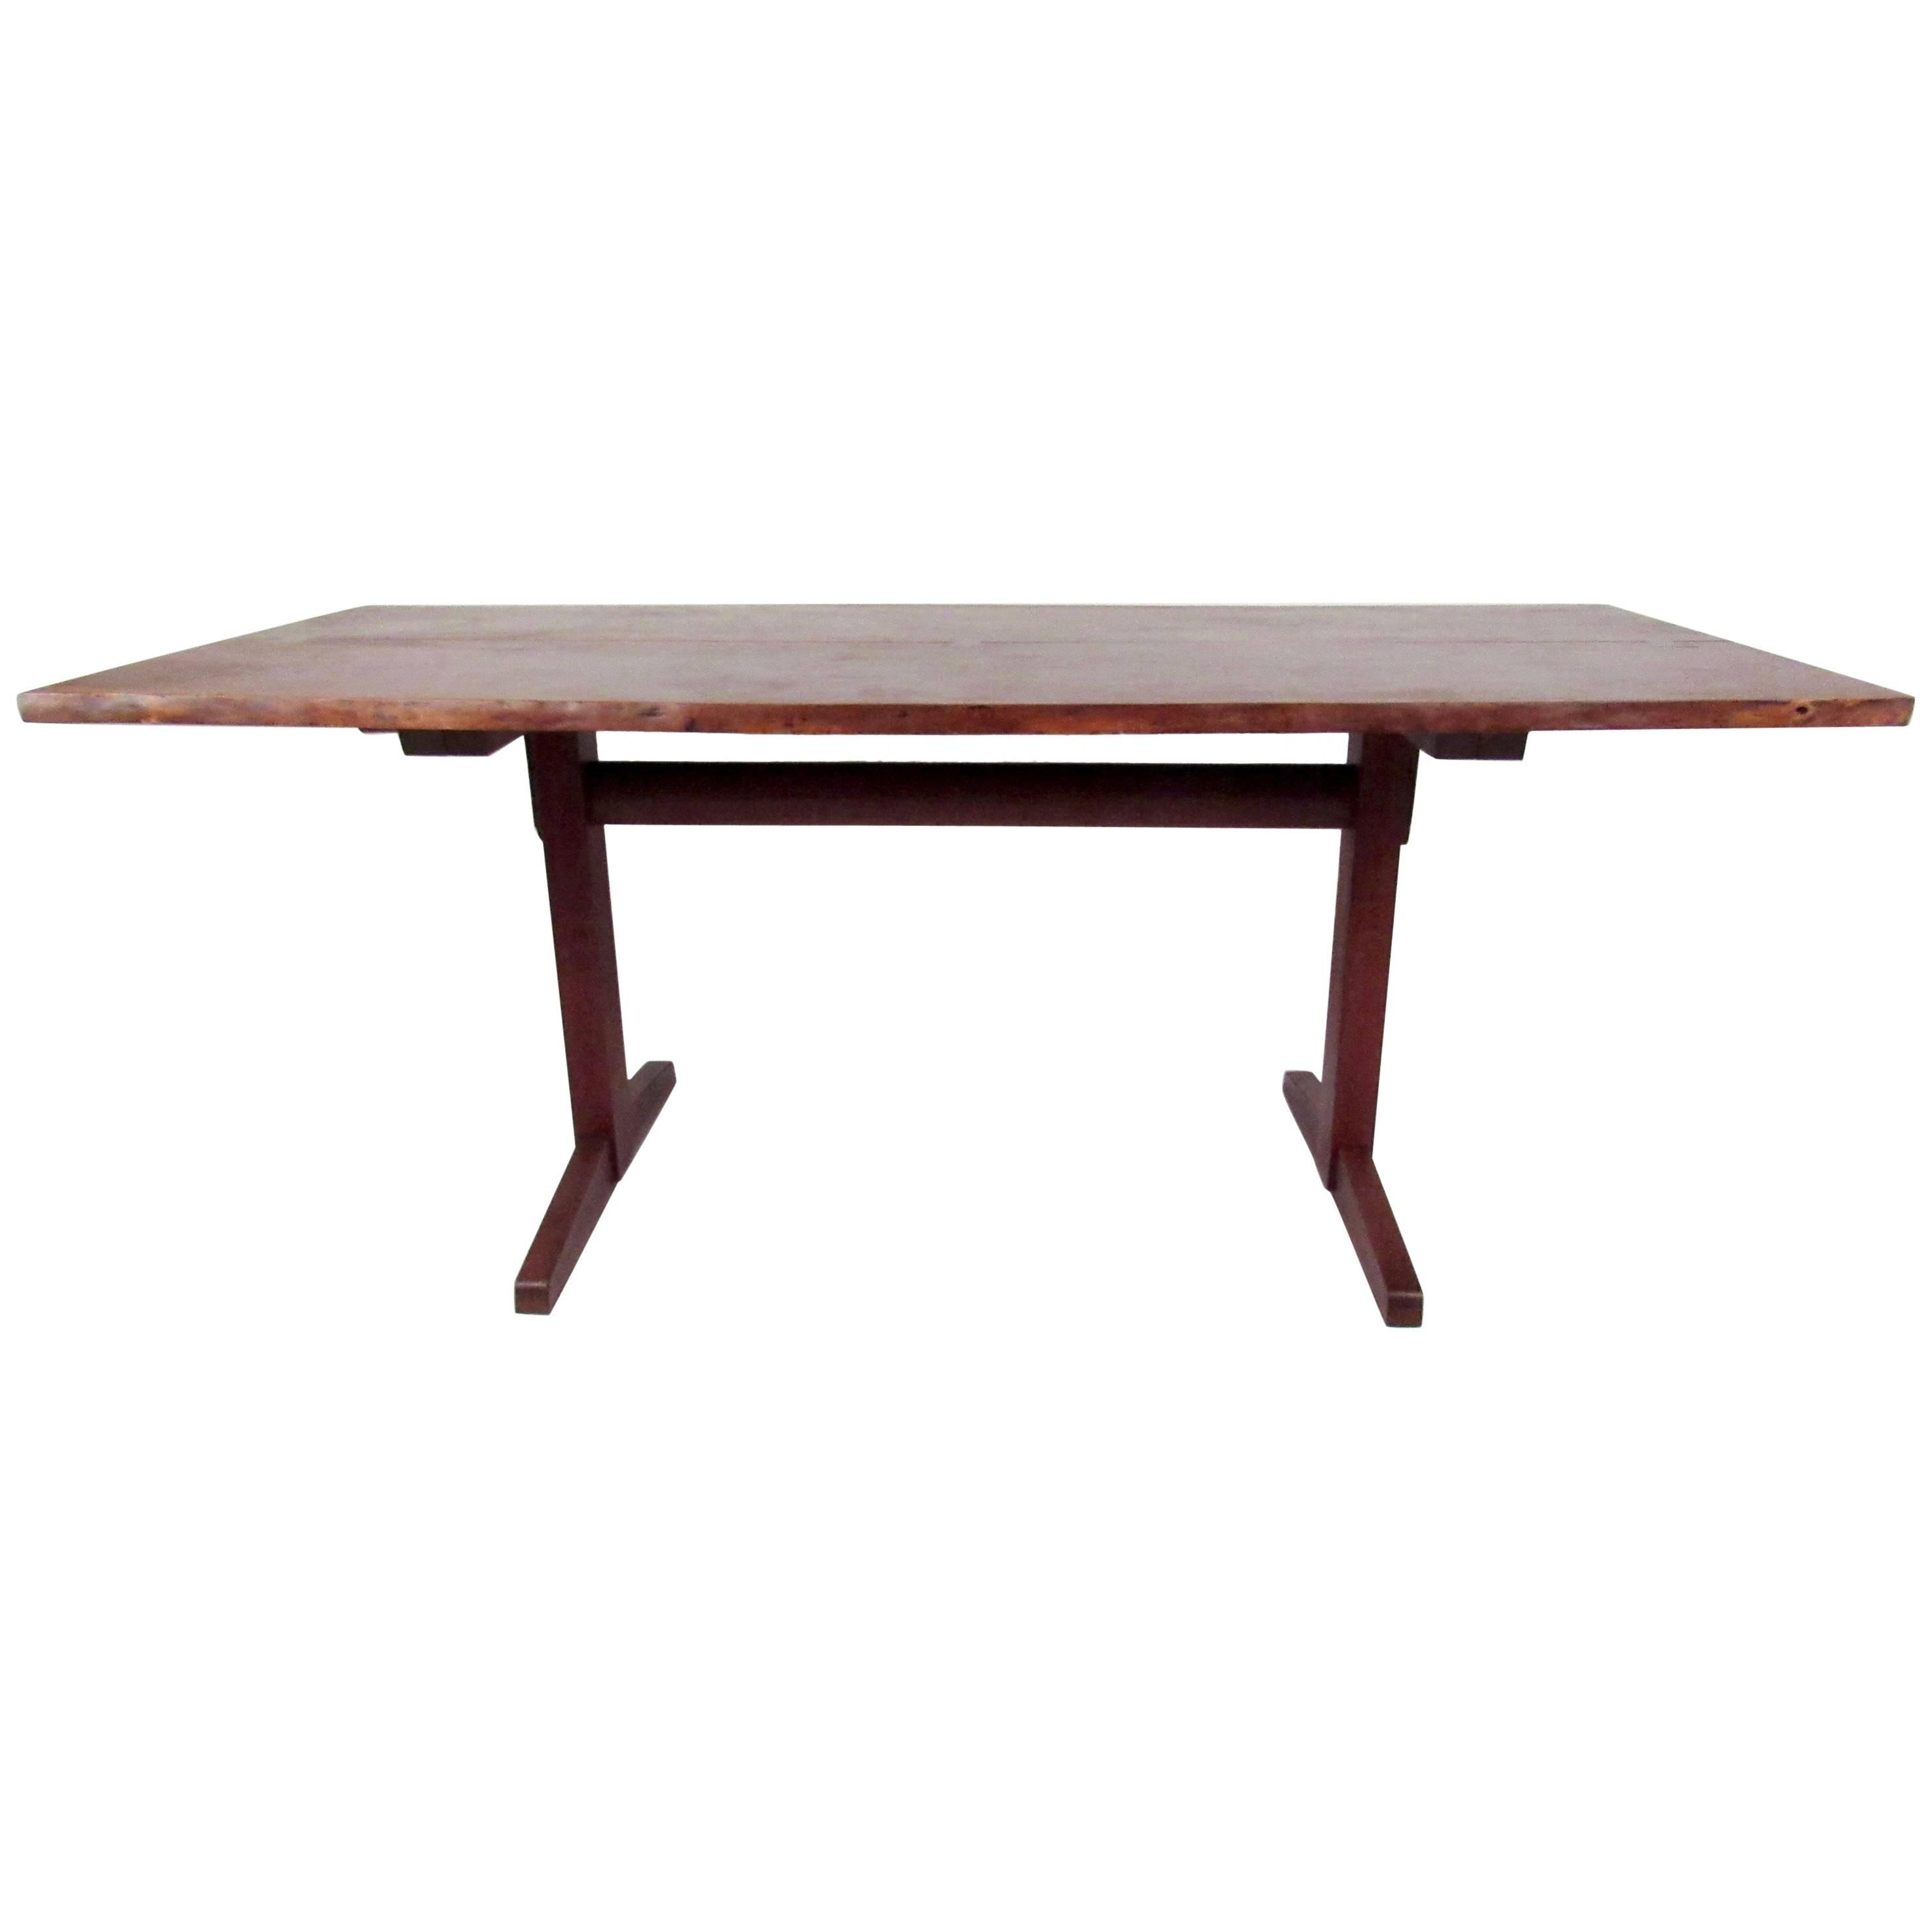 George Nakashima Dining Table With Trestle Base For Sale At